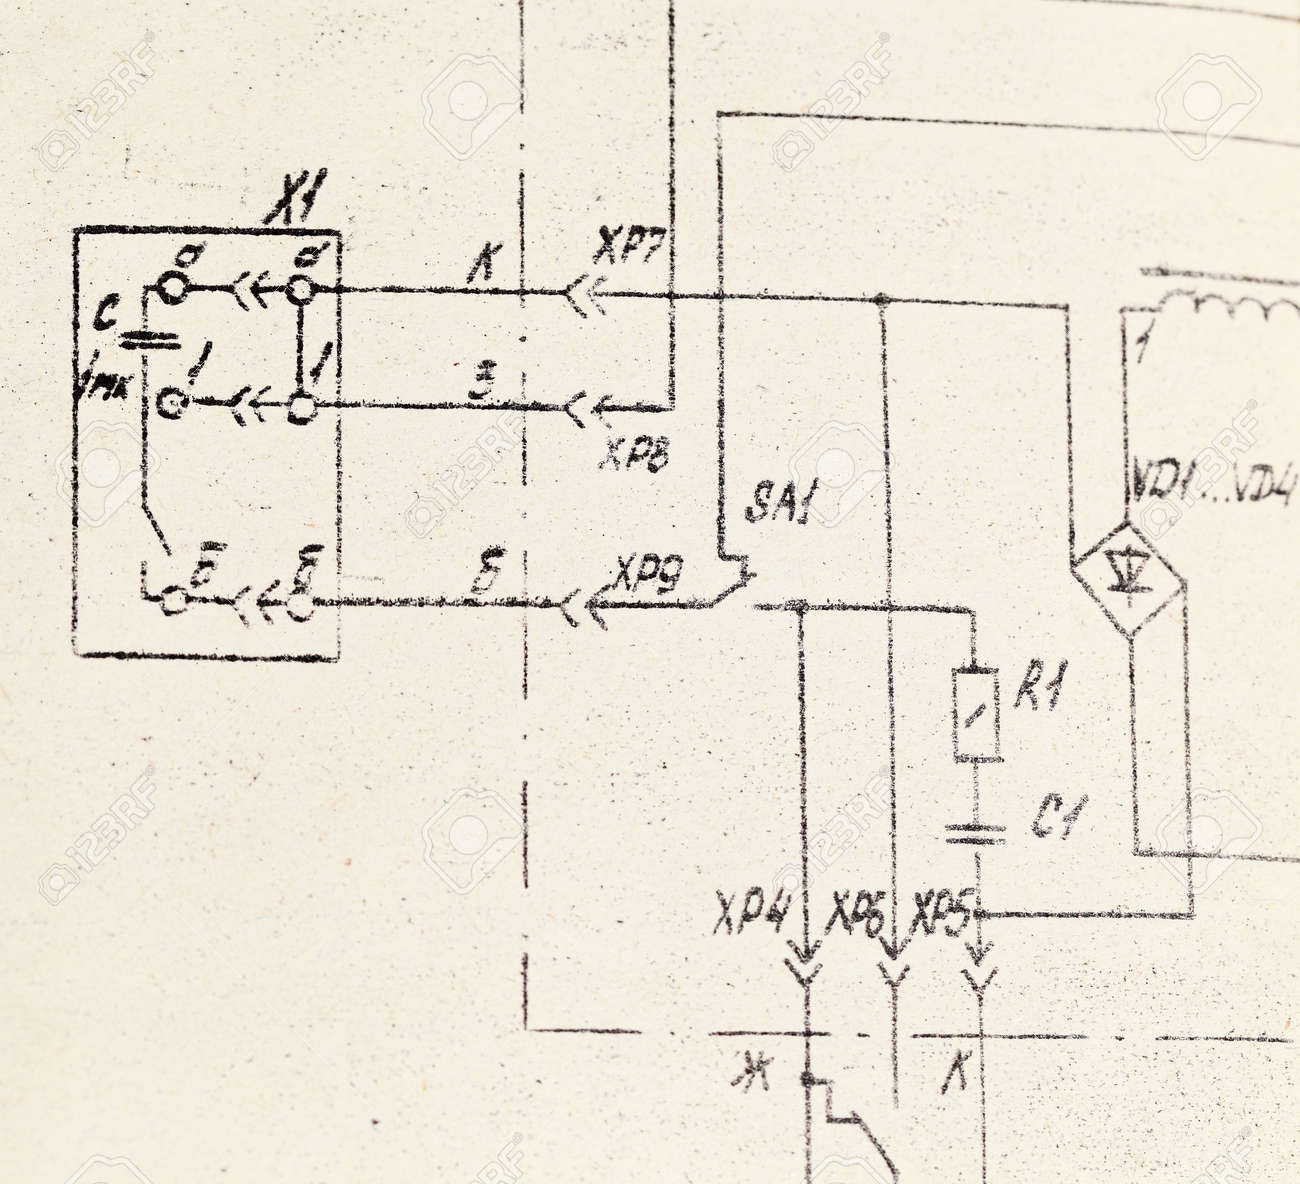 A Schematic Drawing. Good Background Stock Photo, Picture And ...